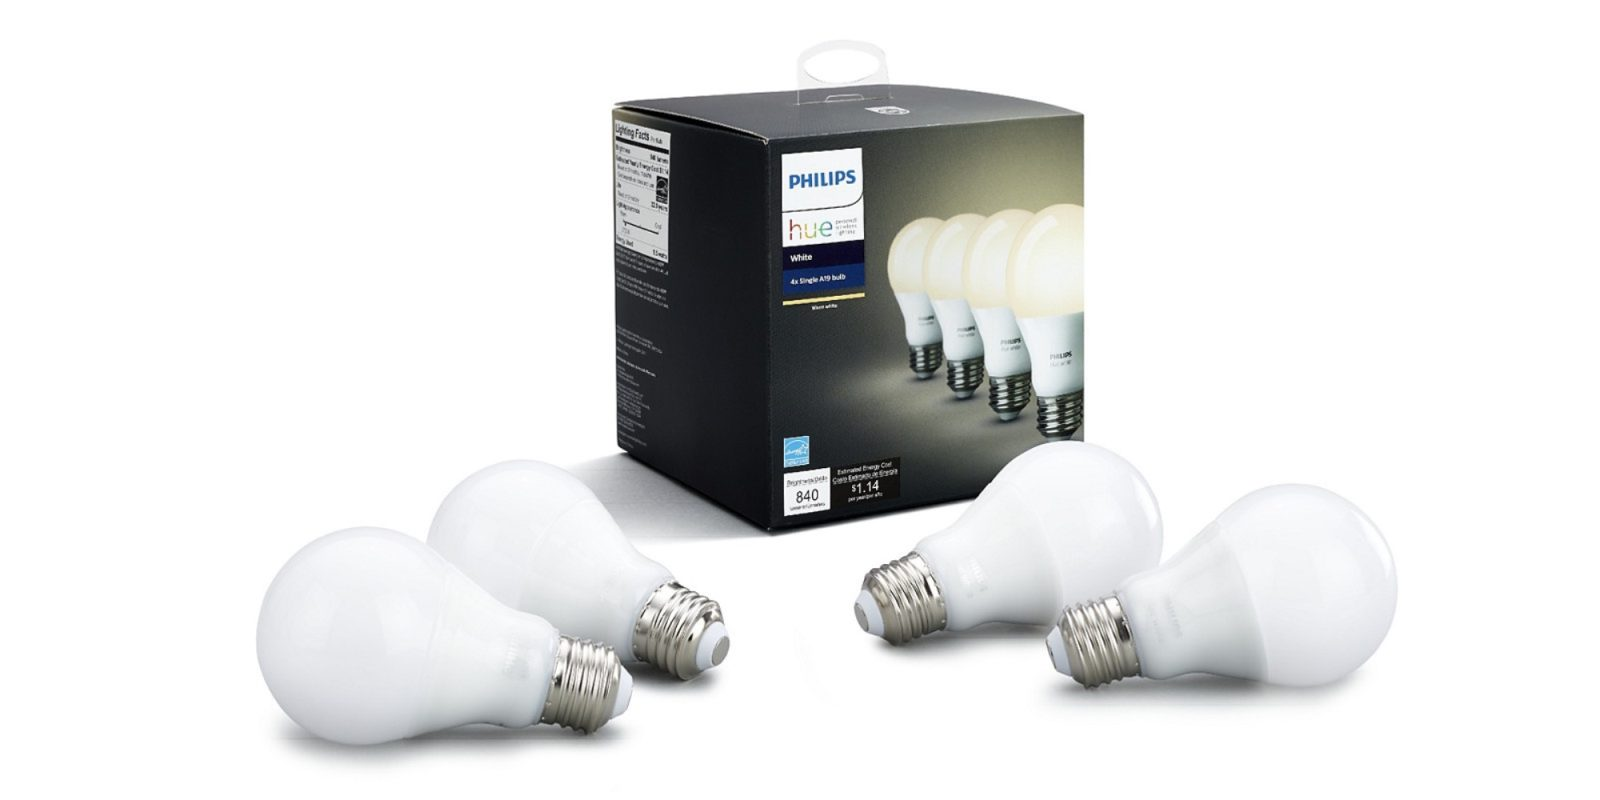 Expand your Philips Hue setup with four dimmable white bulbs for just $10 each